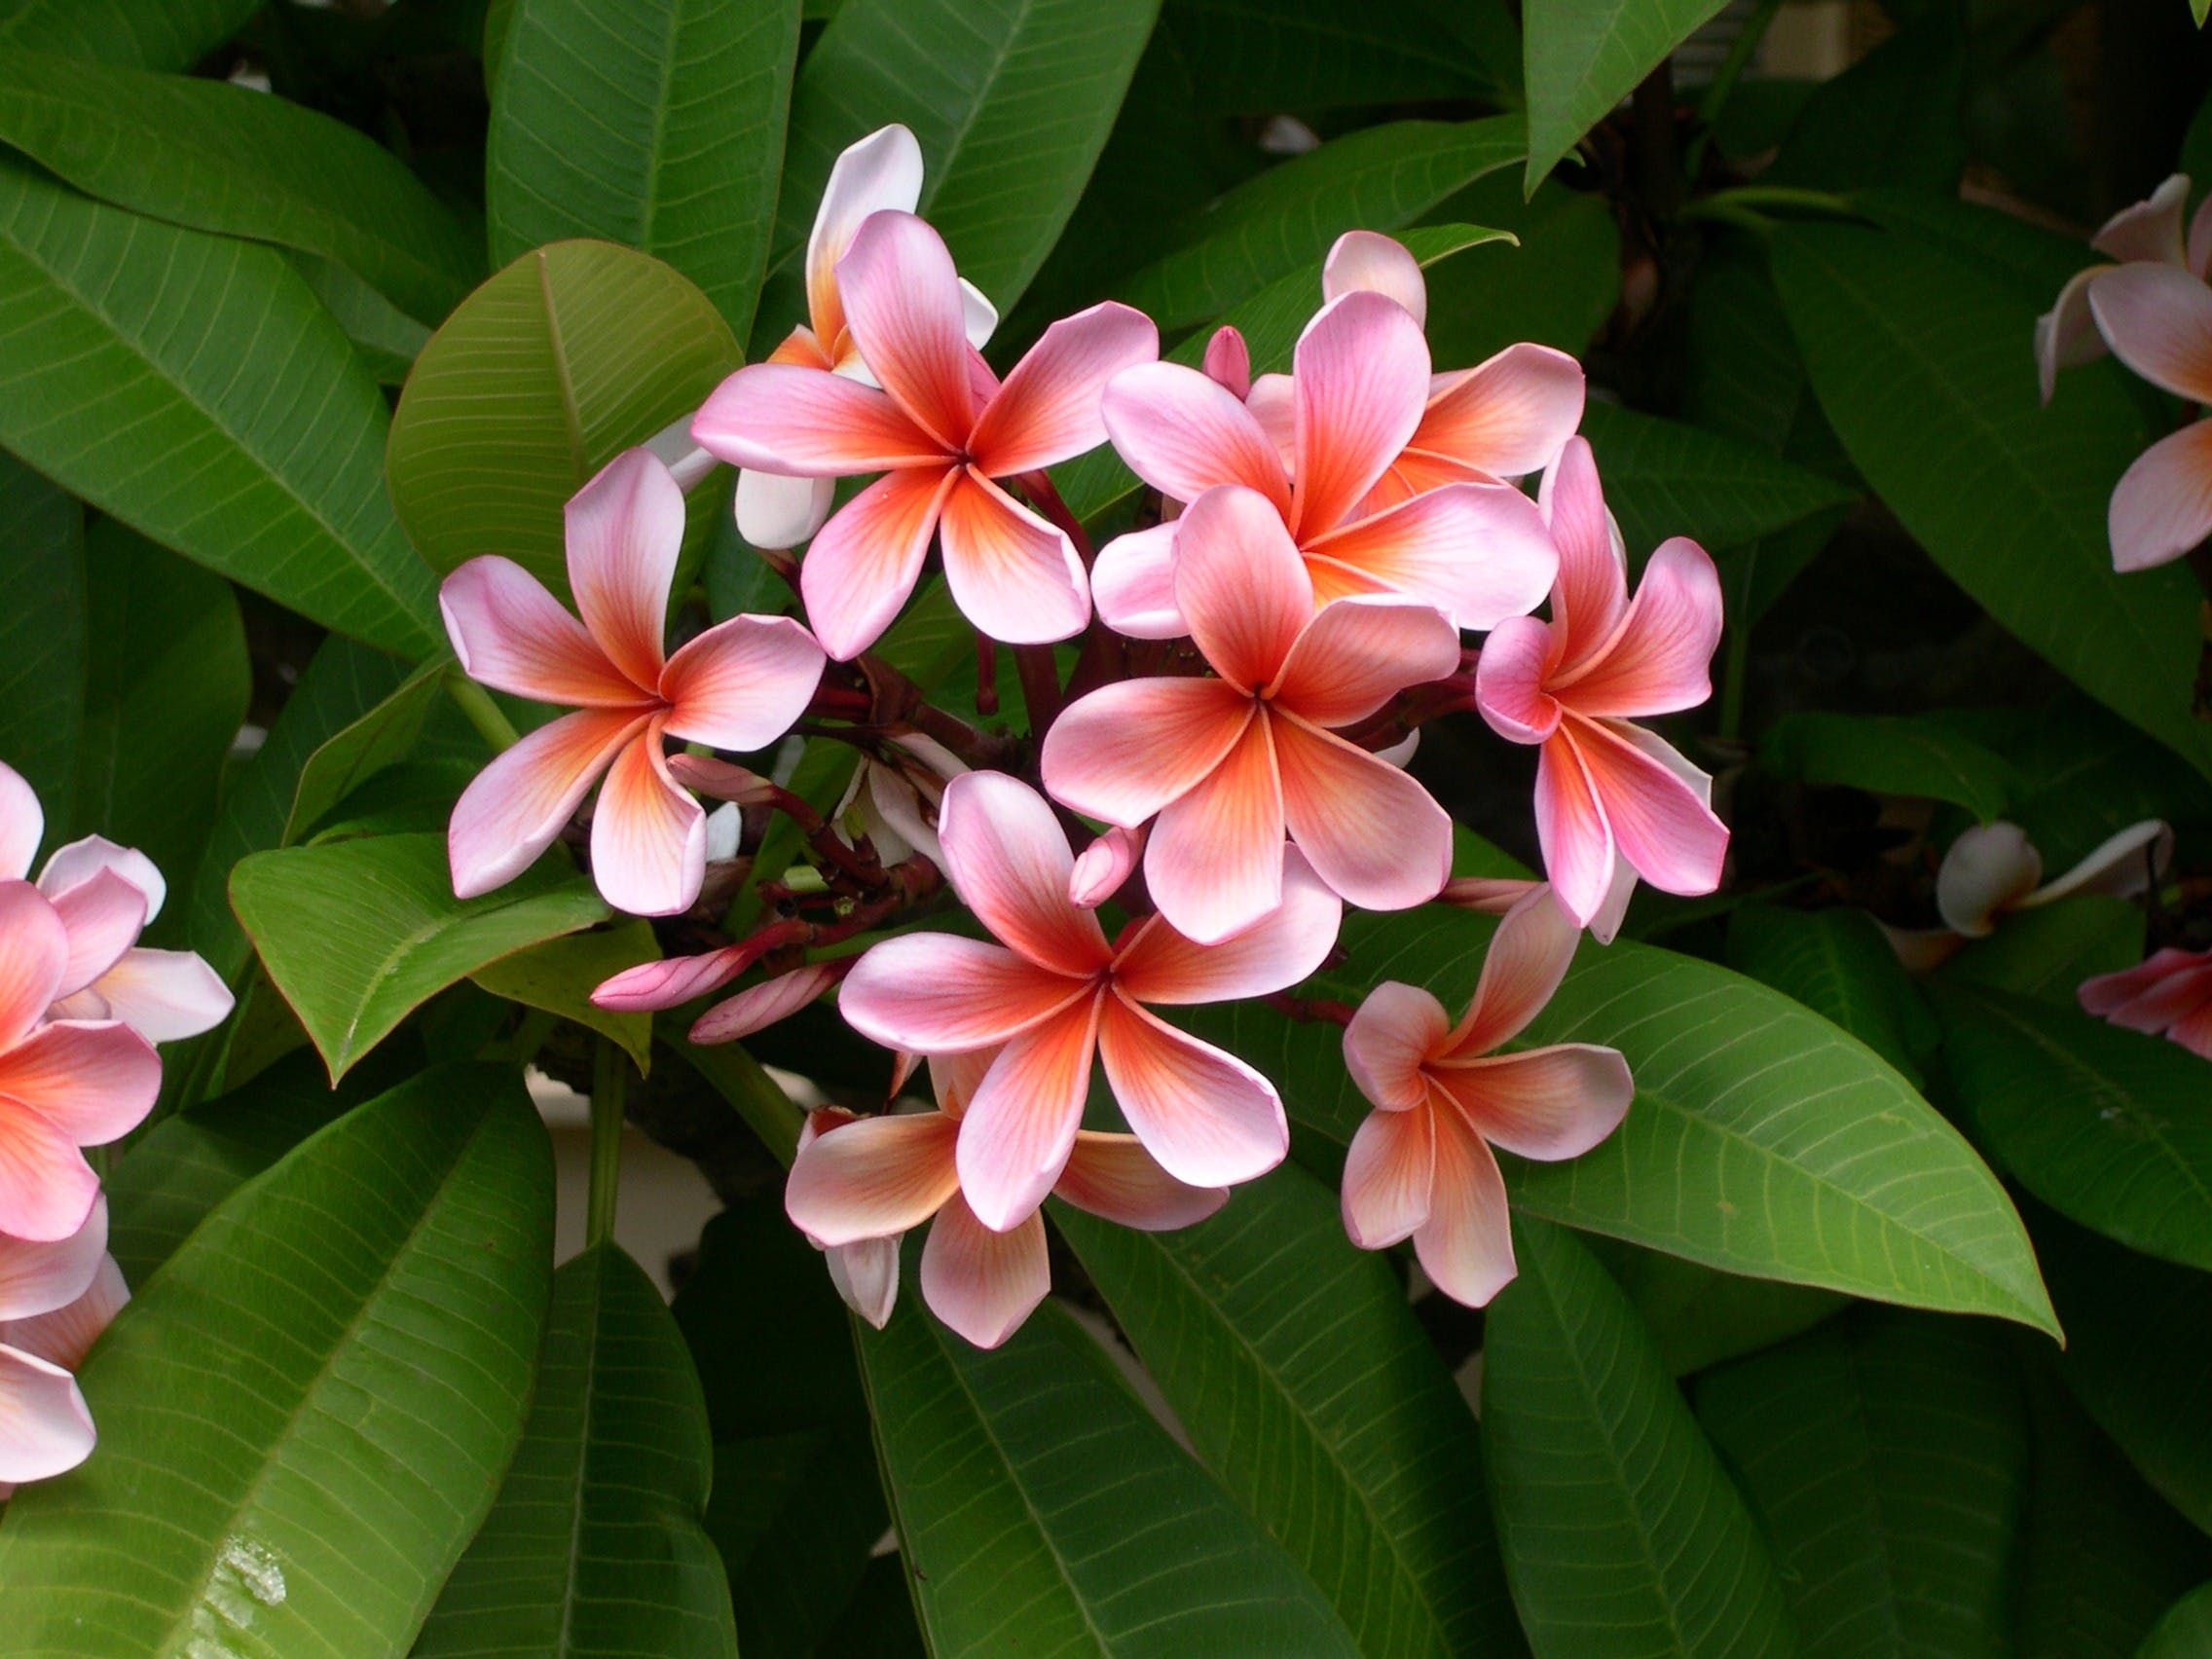 Pink Flowers and Green Leaves